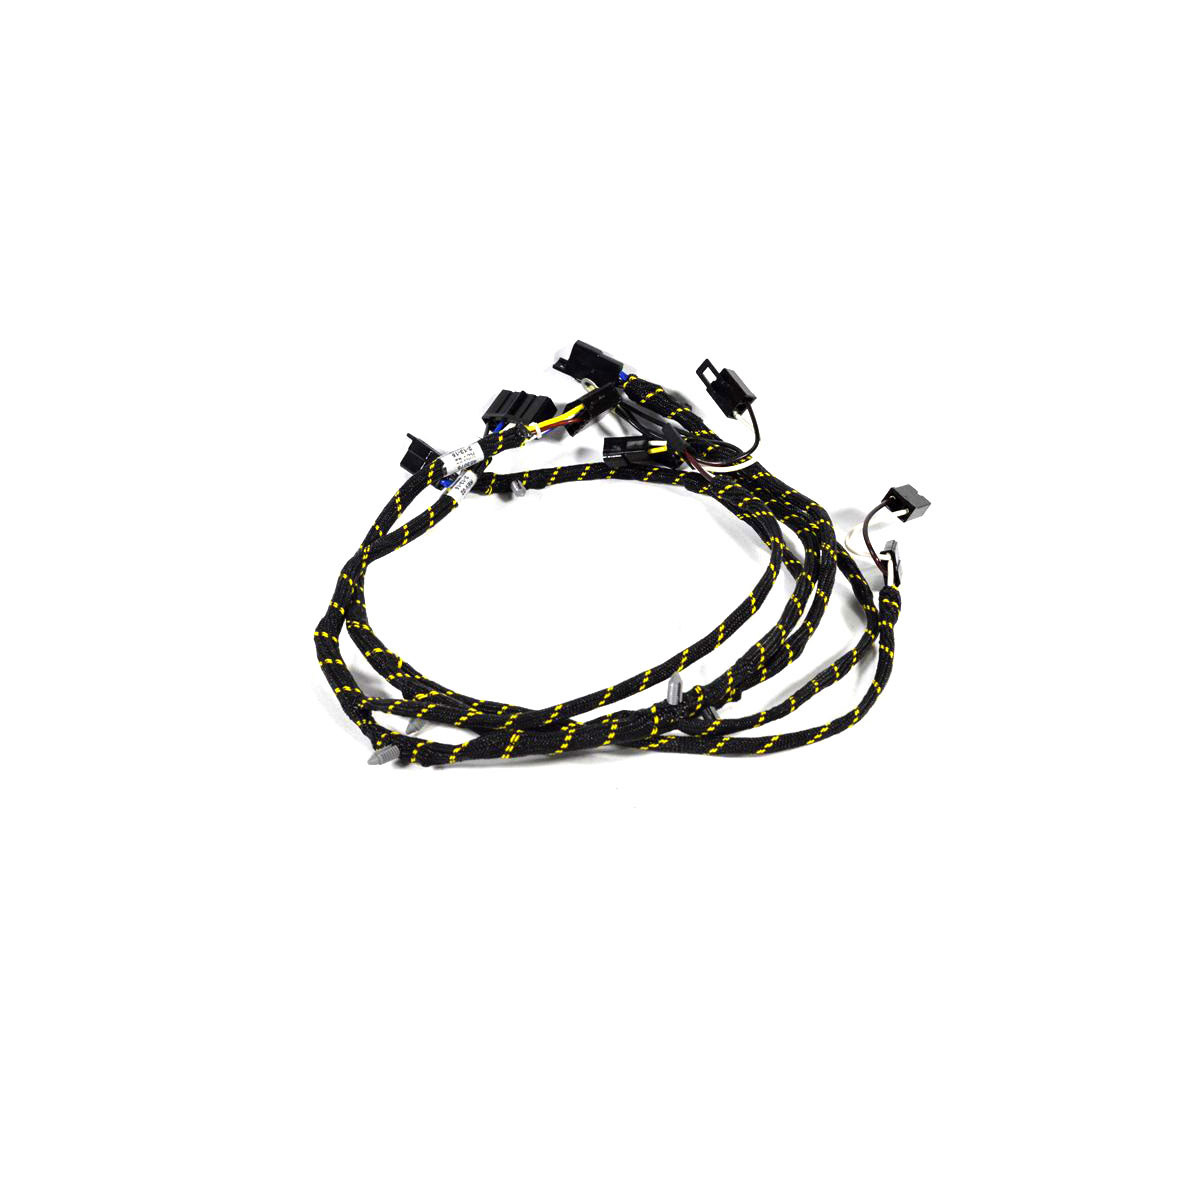 Scag Manual Engine Deck Wire Harness